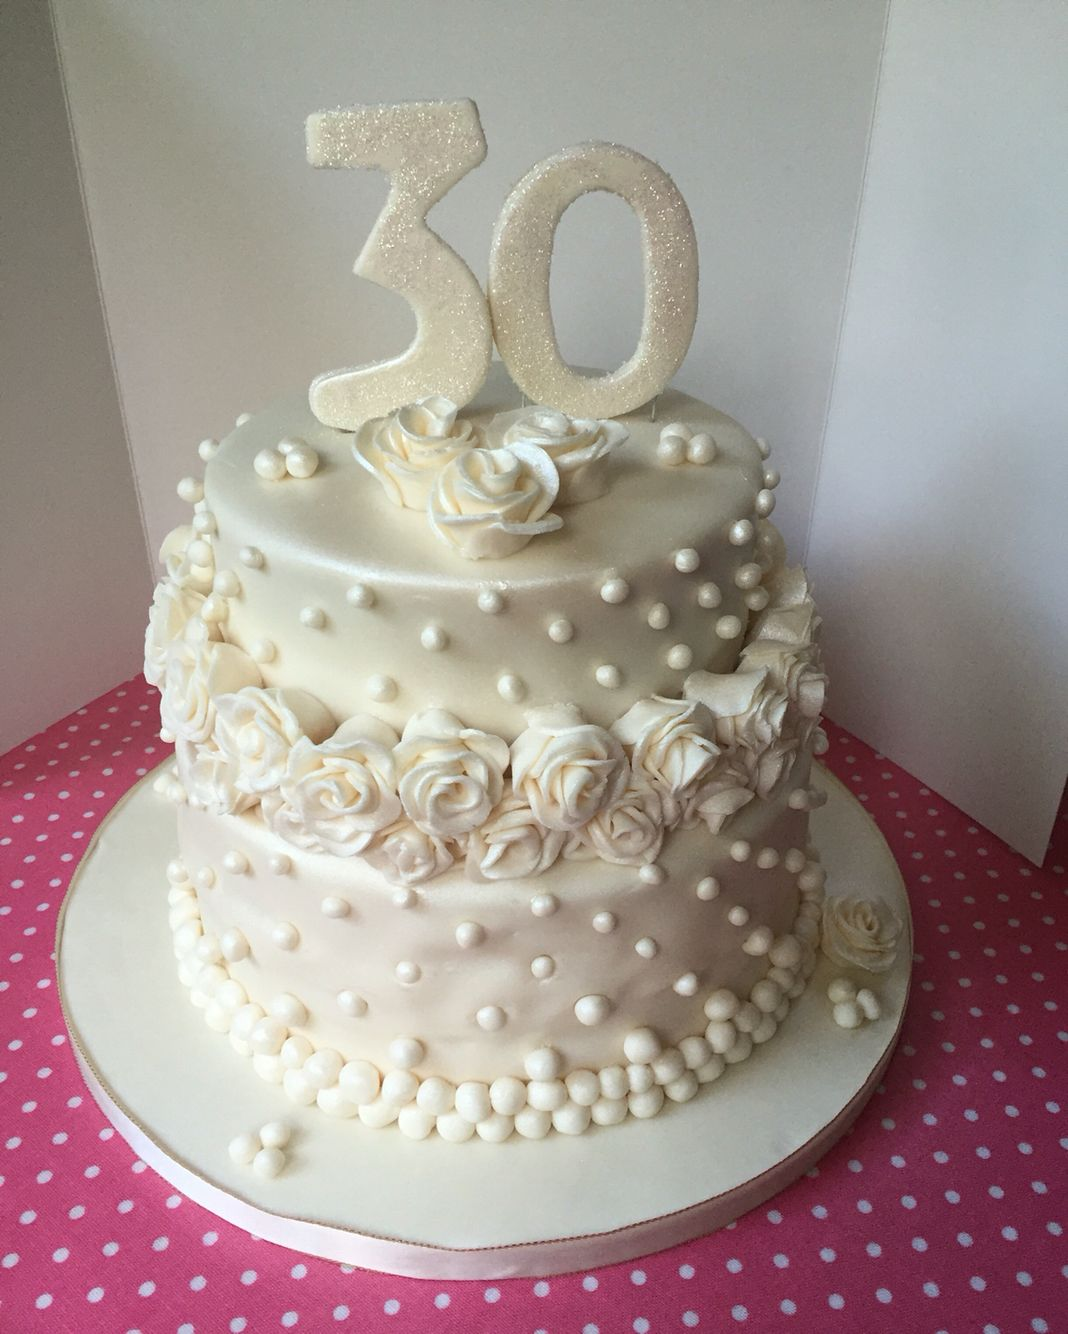 30th wedding anniversary cake pearl anniversary so for 30th wedding anniversary decoration ideas